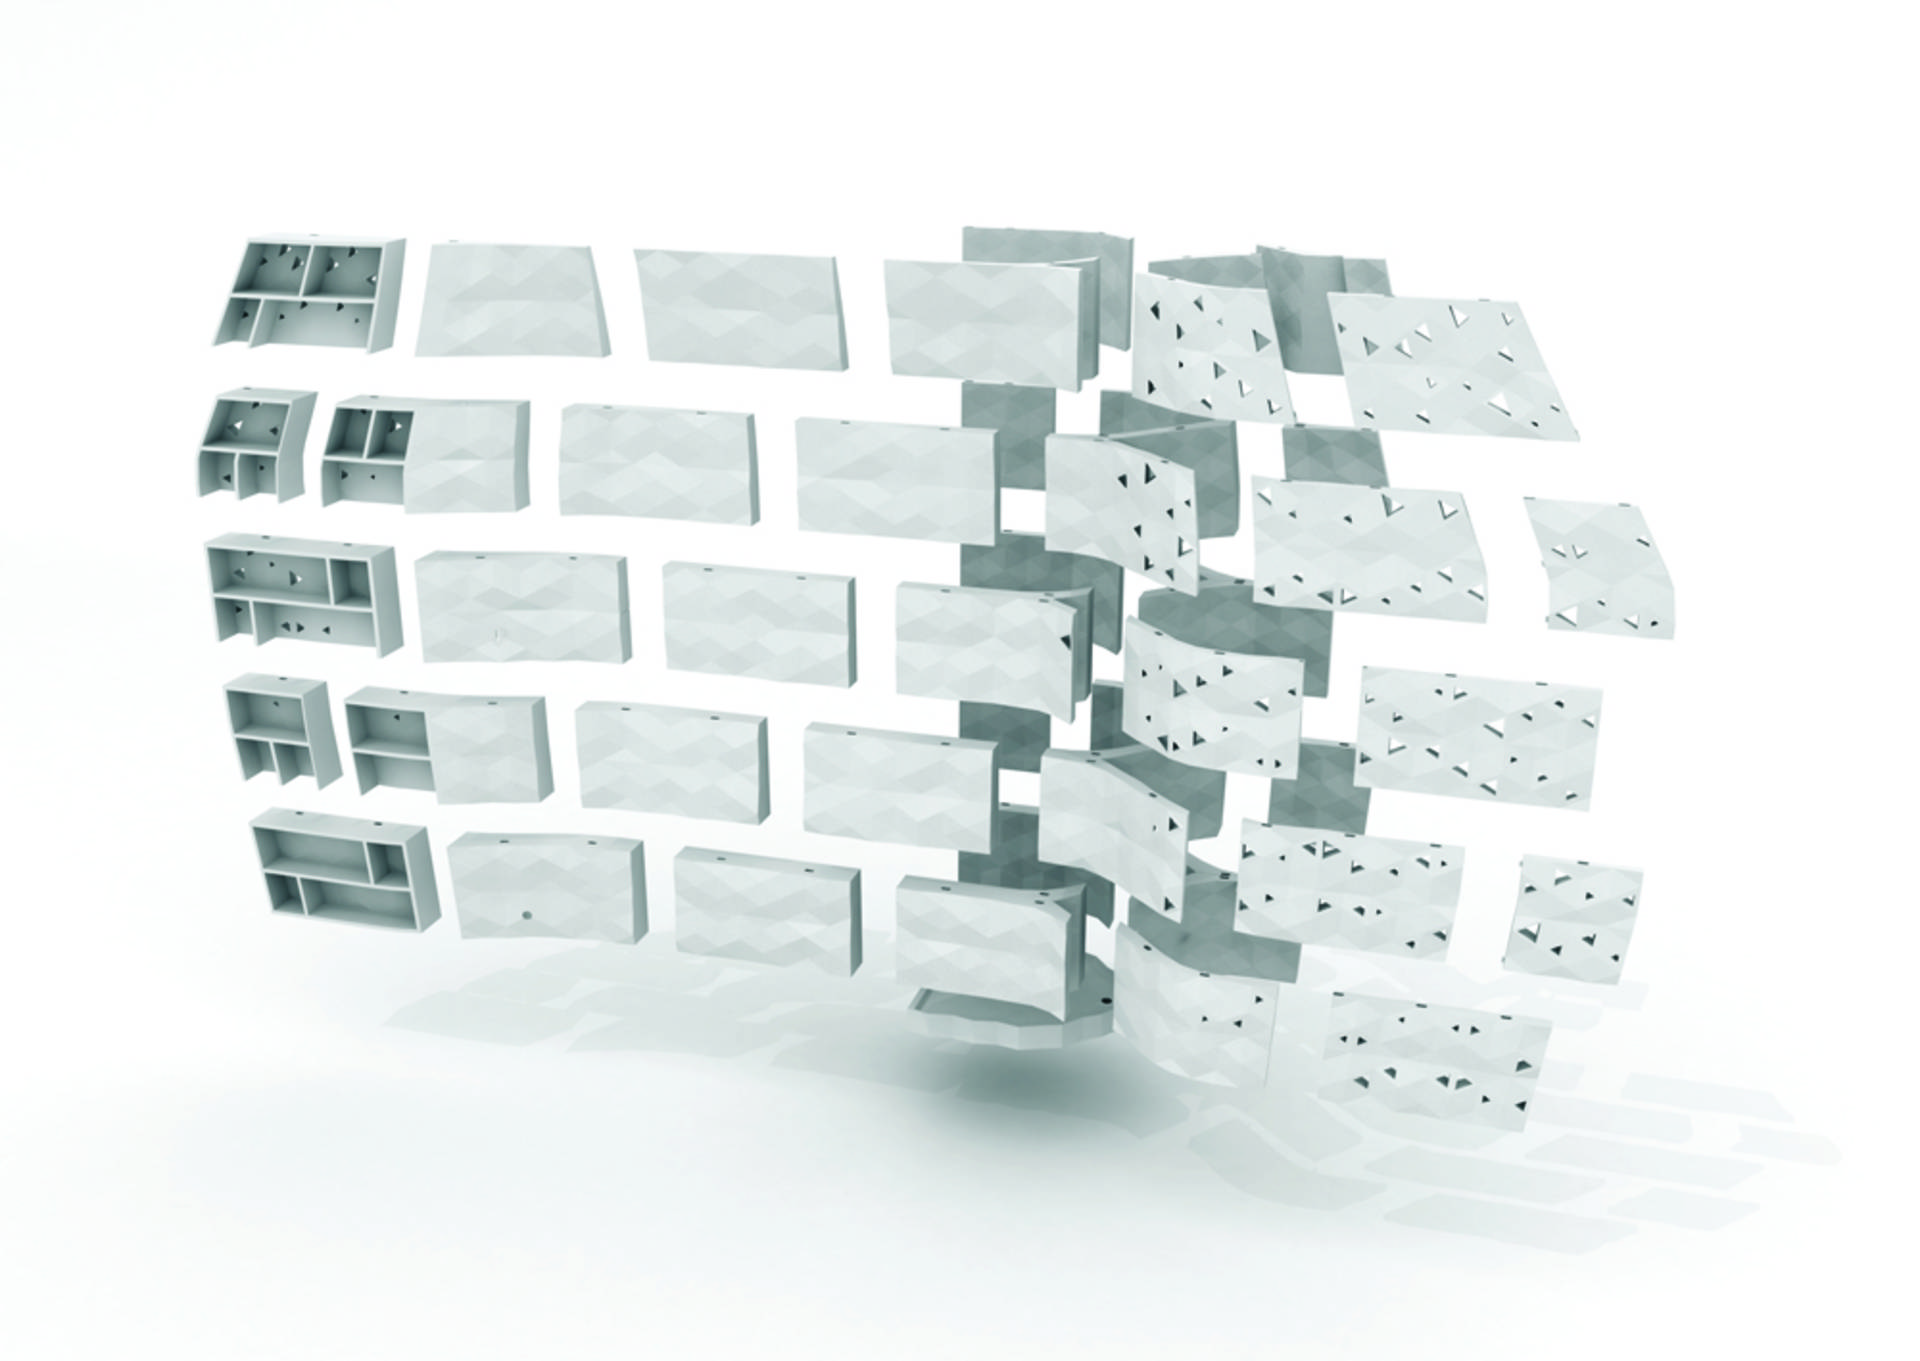 3D Printed Walls by Bryuman Franois and Sonia Laugier Home Reviews